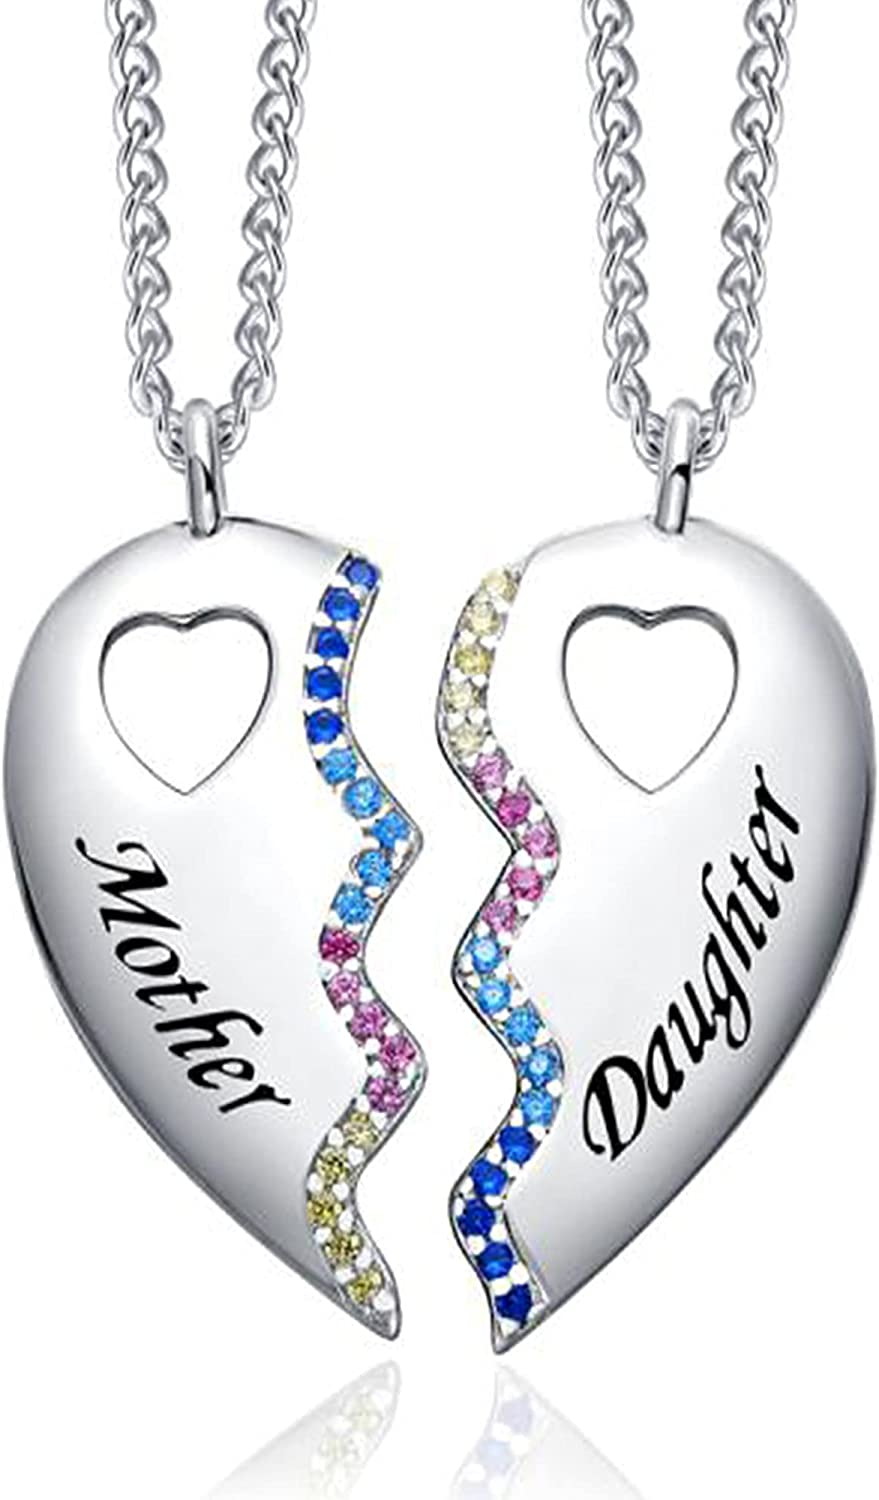 TRENSYGO 925 Sterling Silver Best Friend for 2 Portland Mall High quality Bestie M Necklace